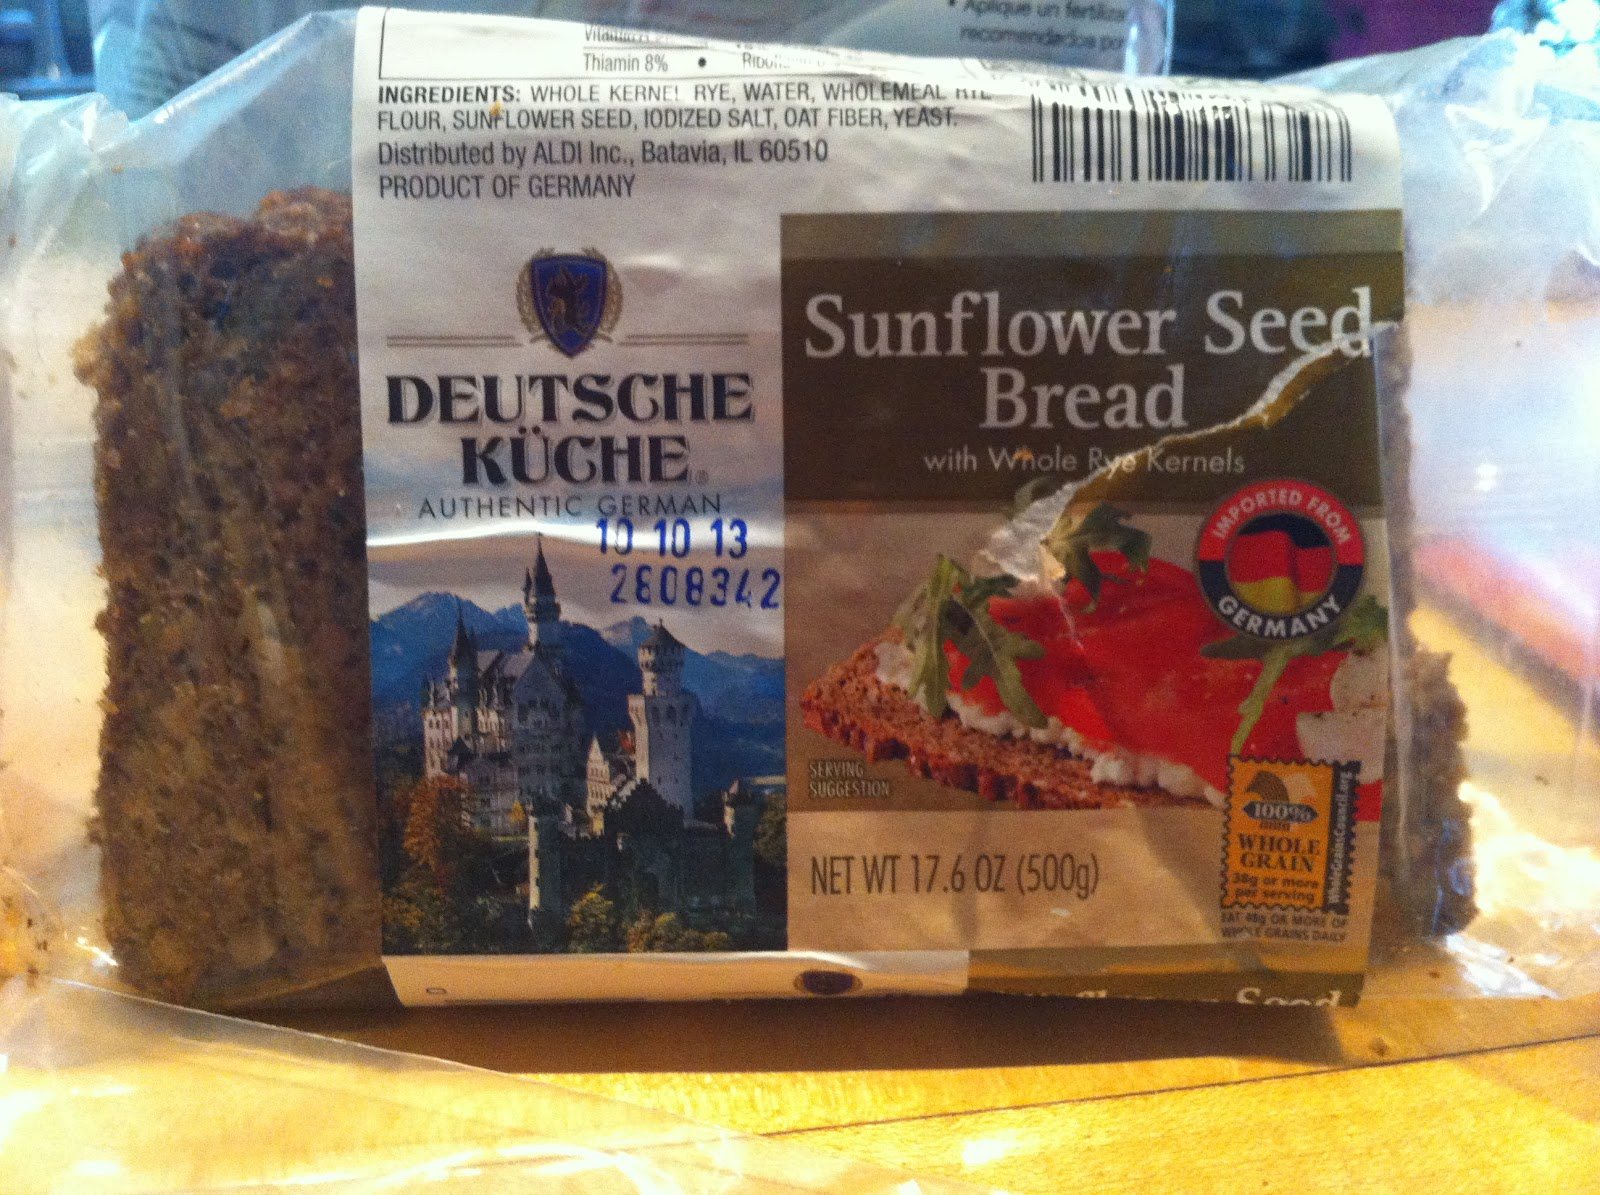 Deutsche Kuche Bread What S Good At Aldi Deutsche Kuche Sunflower Seed Bread